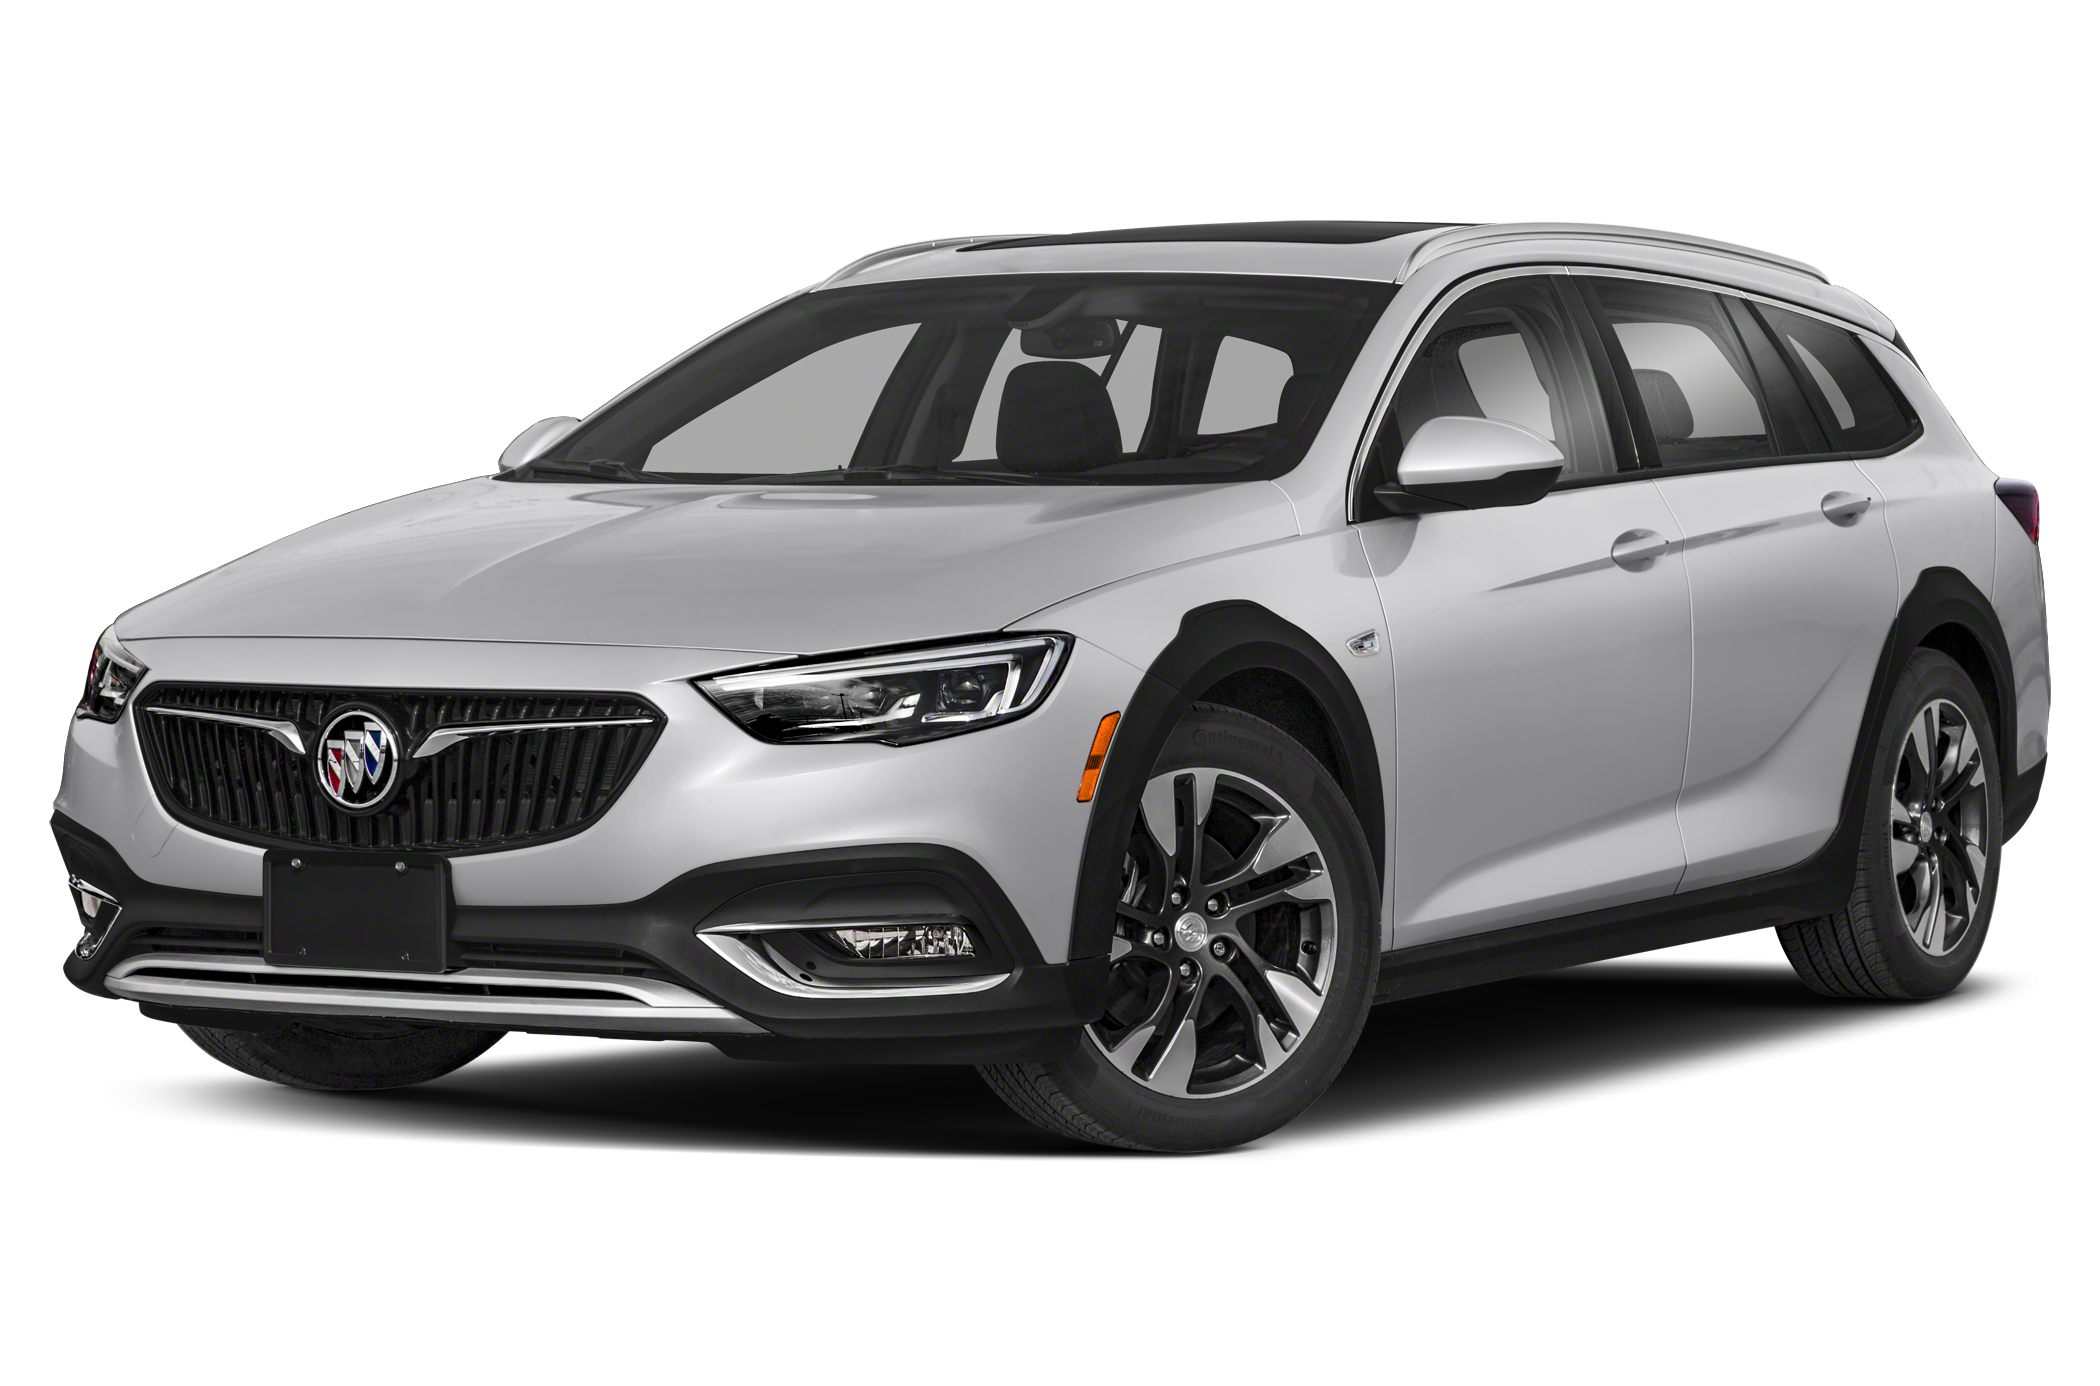 2020 Buick Regal Tourx Rebates And Incentives New 2021 Buick Regal Tourx Price, Lease, Awd